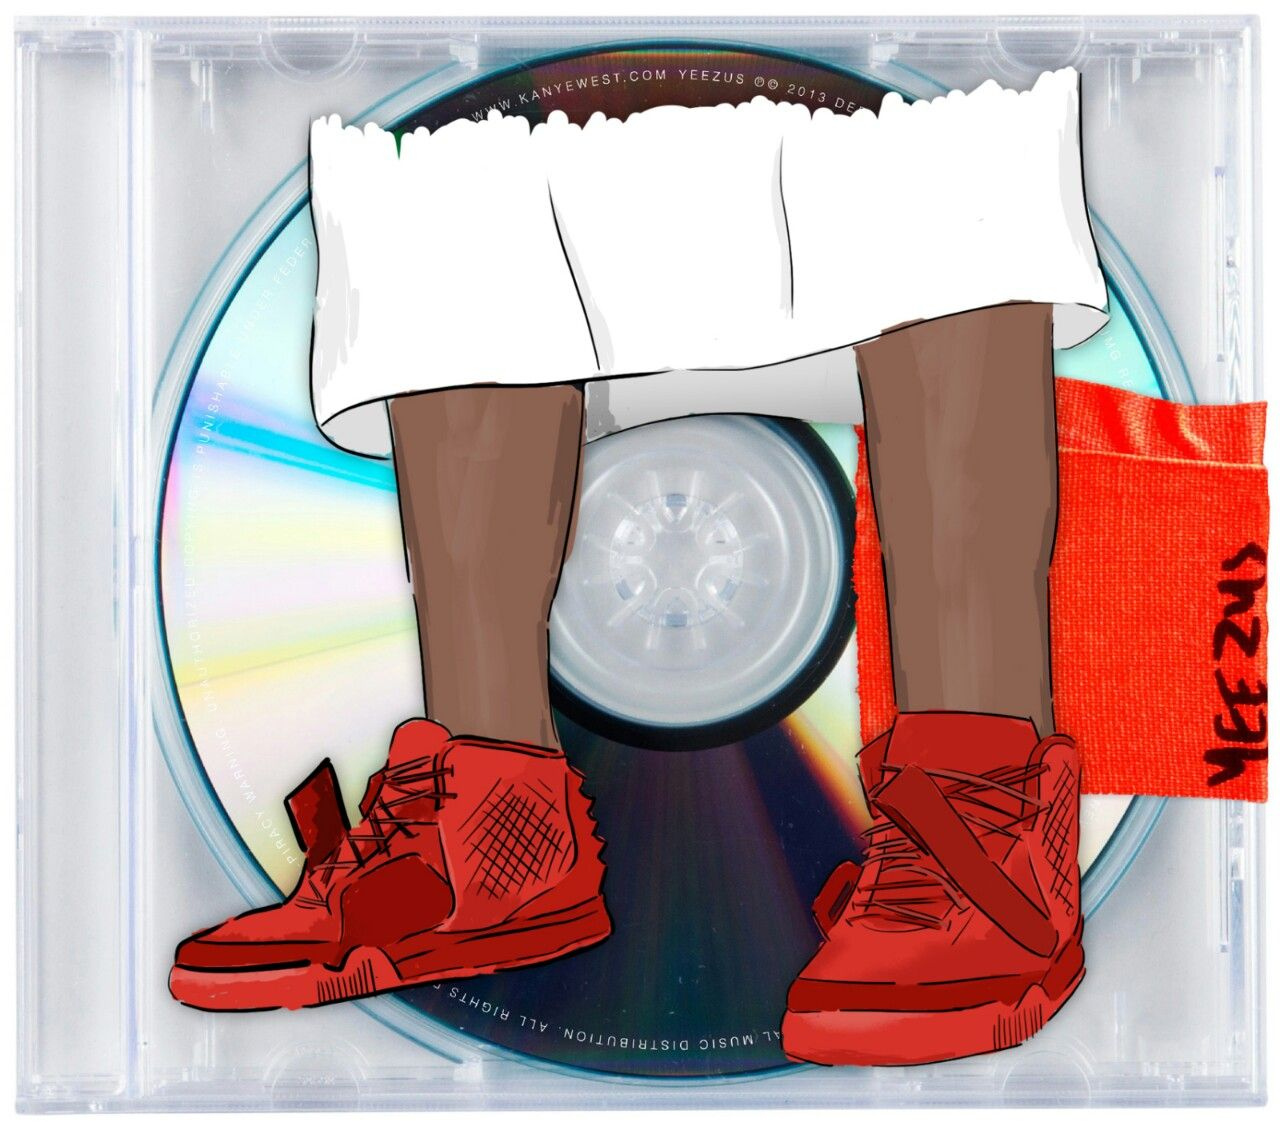 Yeezus 14 Rolling Out Kanye West Yeezus Yeezus Cover Art Design